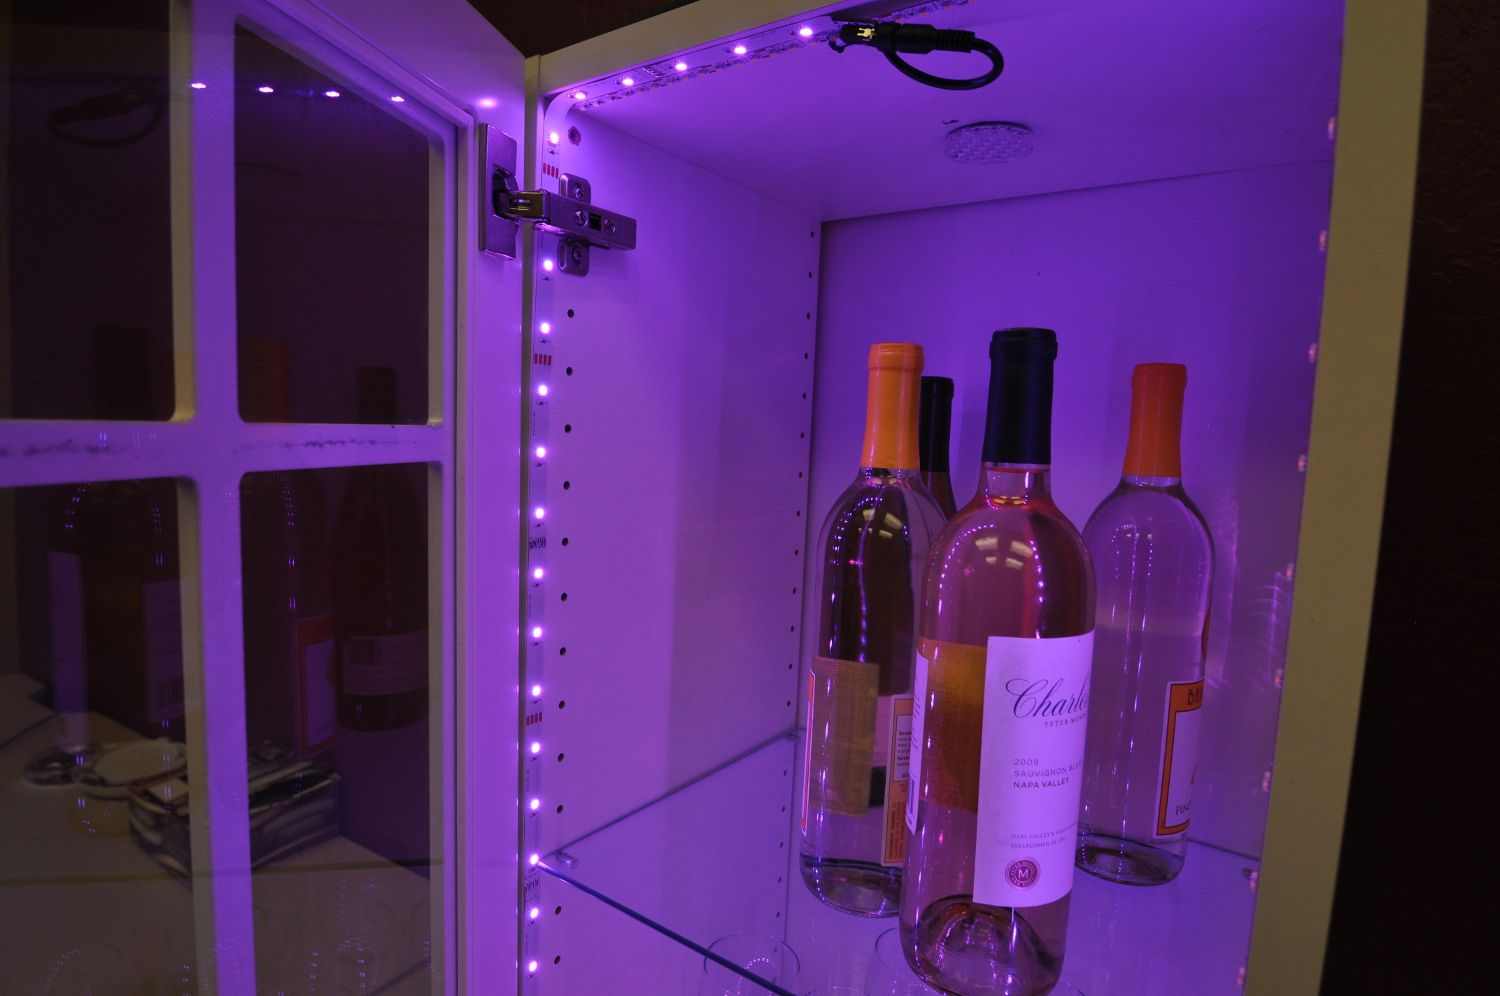 inspired led lighting. In-Cabinet Accent Lighting- RGB Color Changing LED Flexible Strips By Inspired LED; LEDs Hidden Door Frame When Is Closed Led Lighting